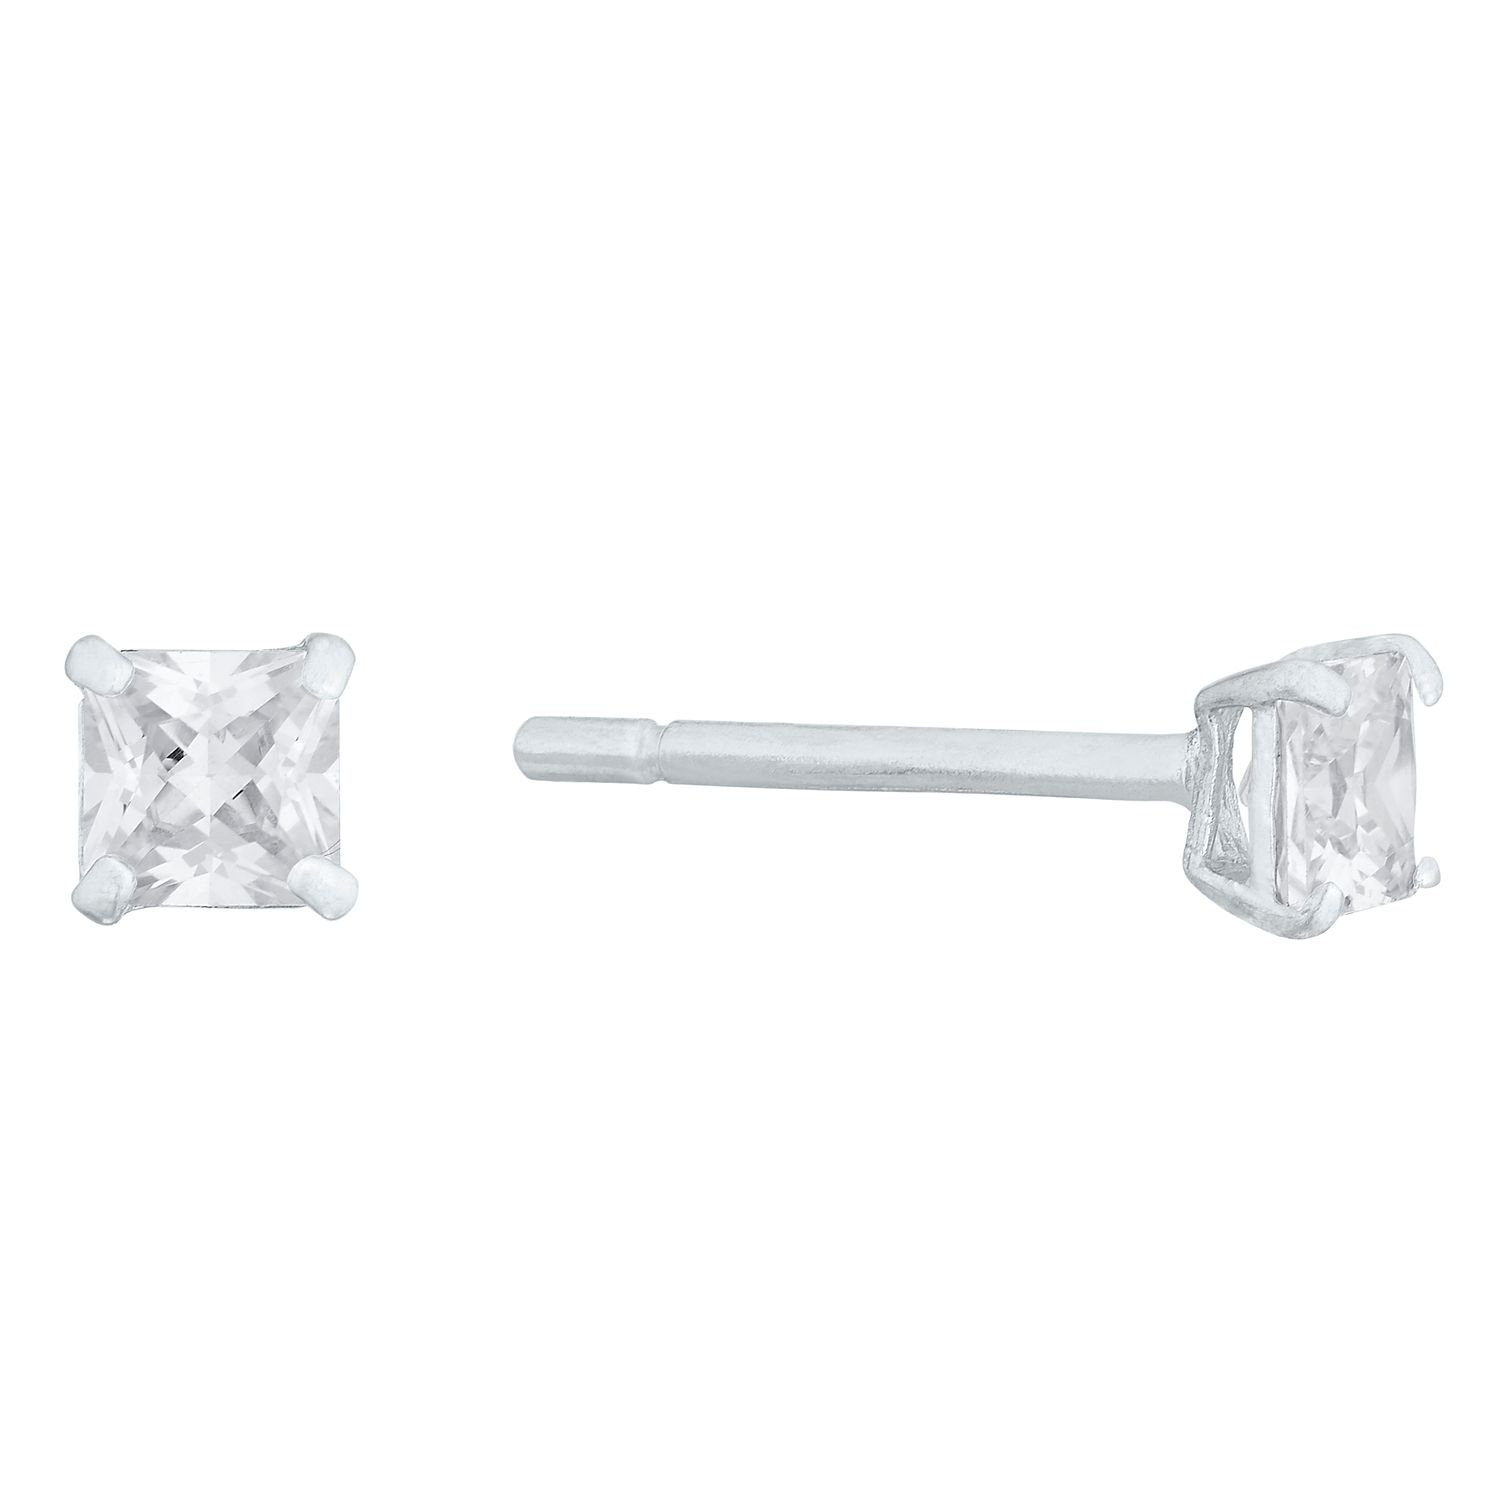 9ct White Gold 3mm Princess Stud Earrings - Product number 4515986